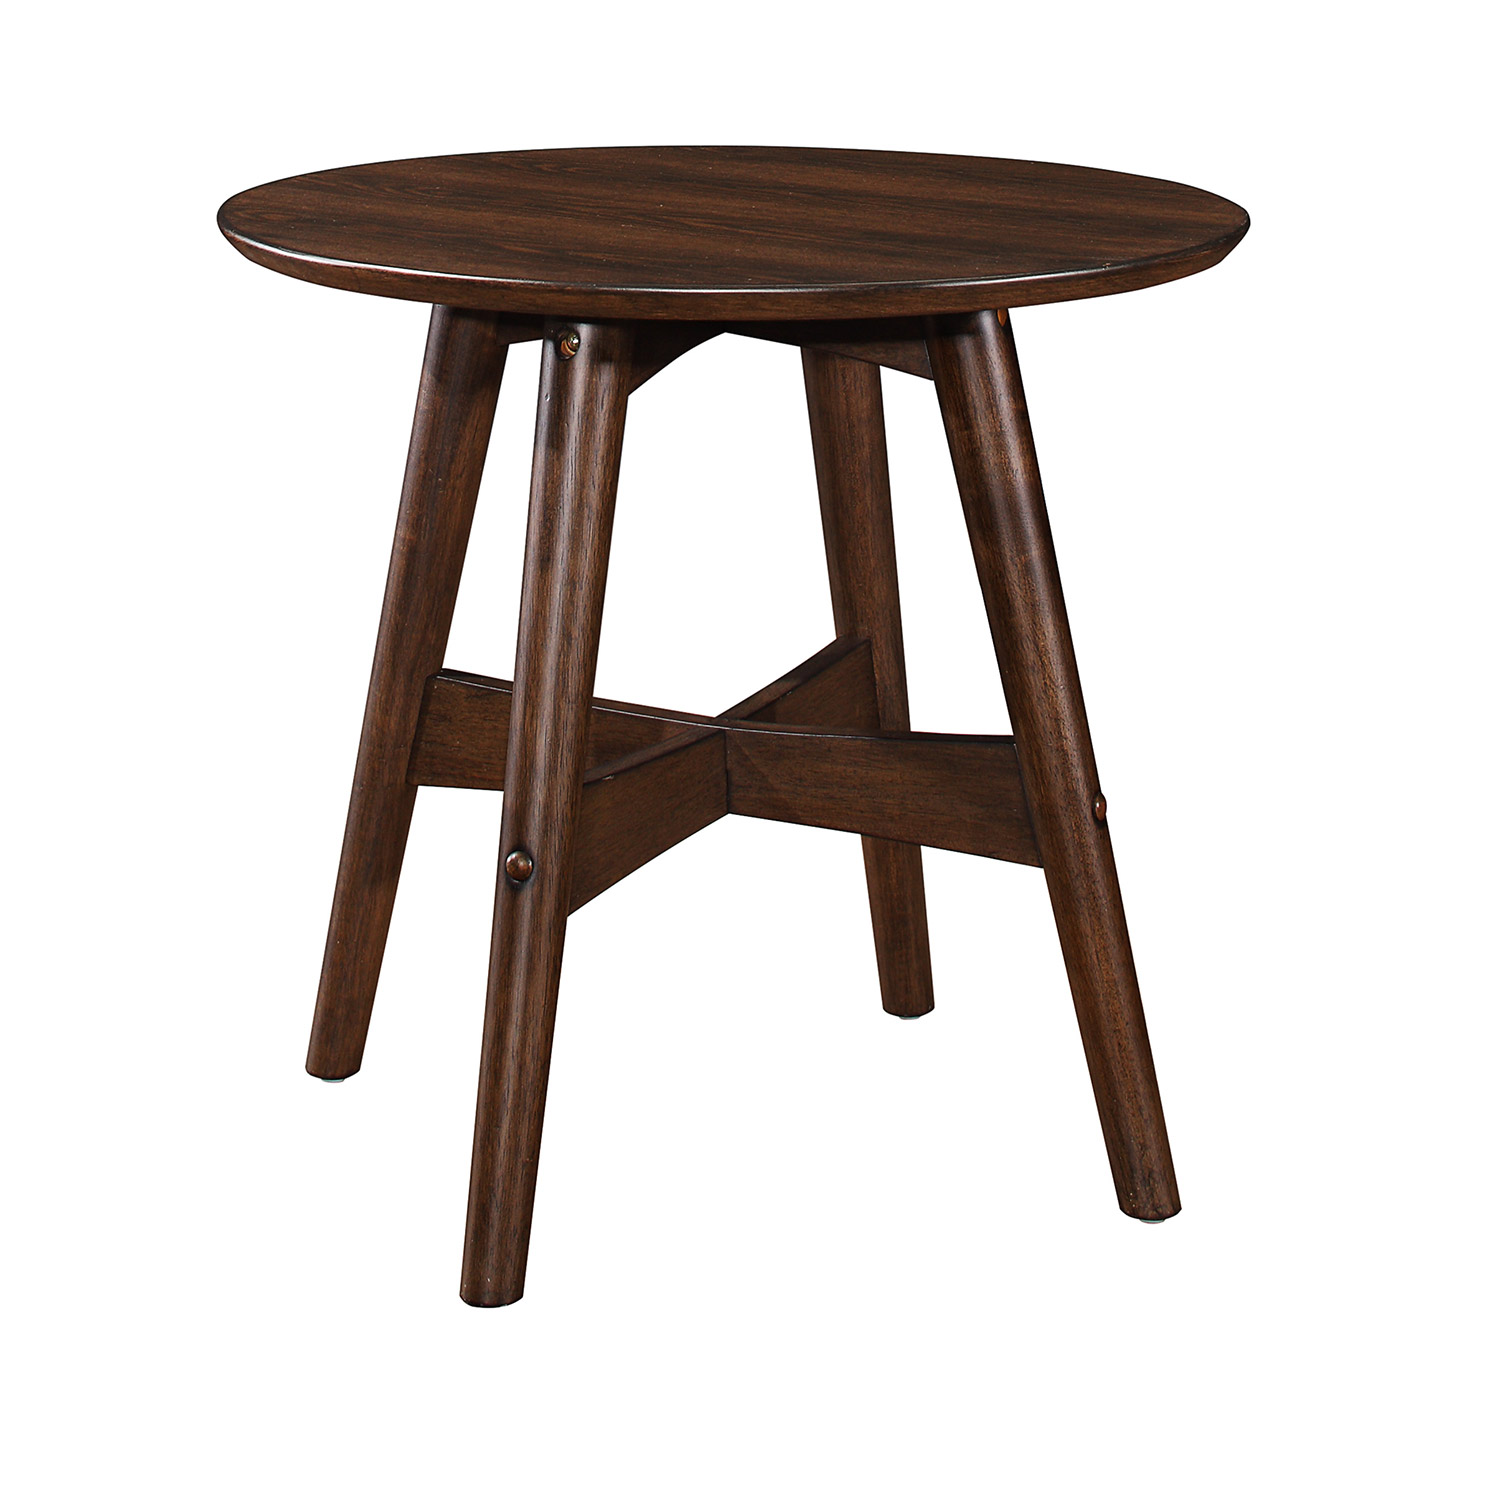 Homelegance Lhasa End Table - Warm Walnut